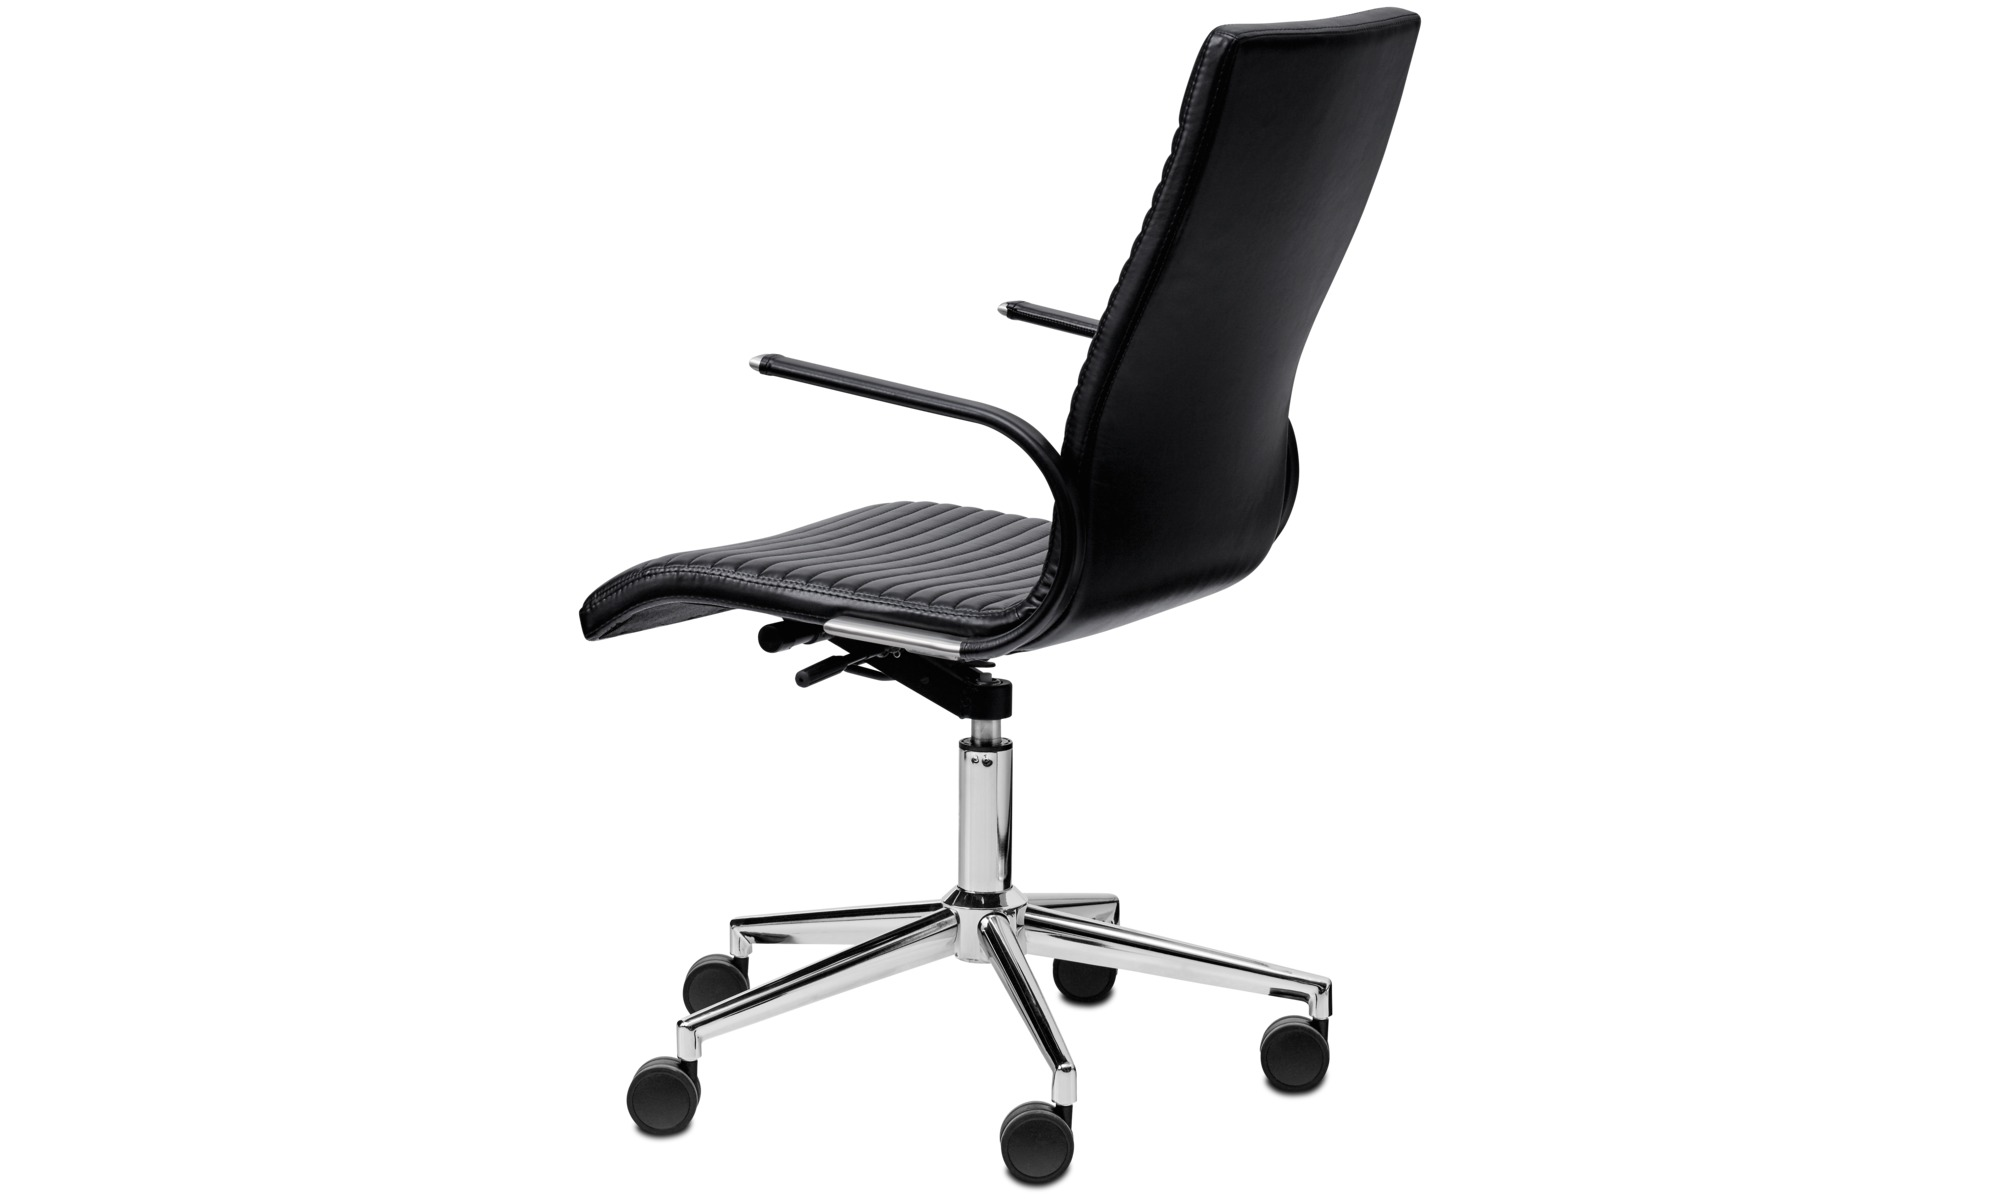 office chairs images. Office Chairs - Ferrara Chair Black Leather Images